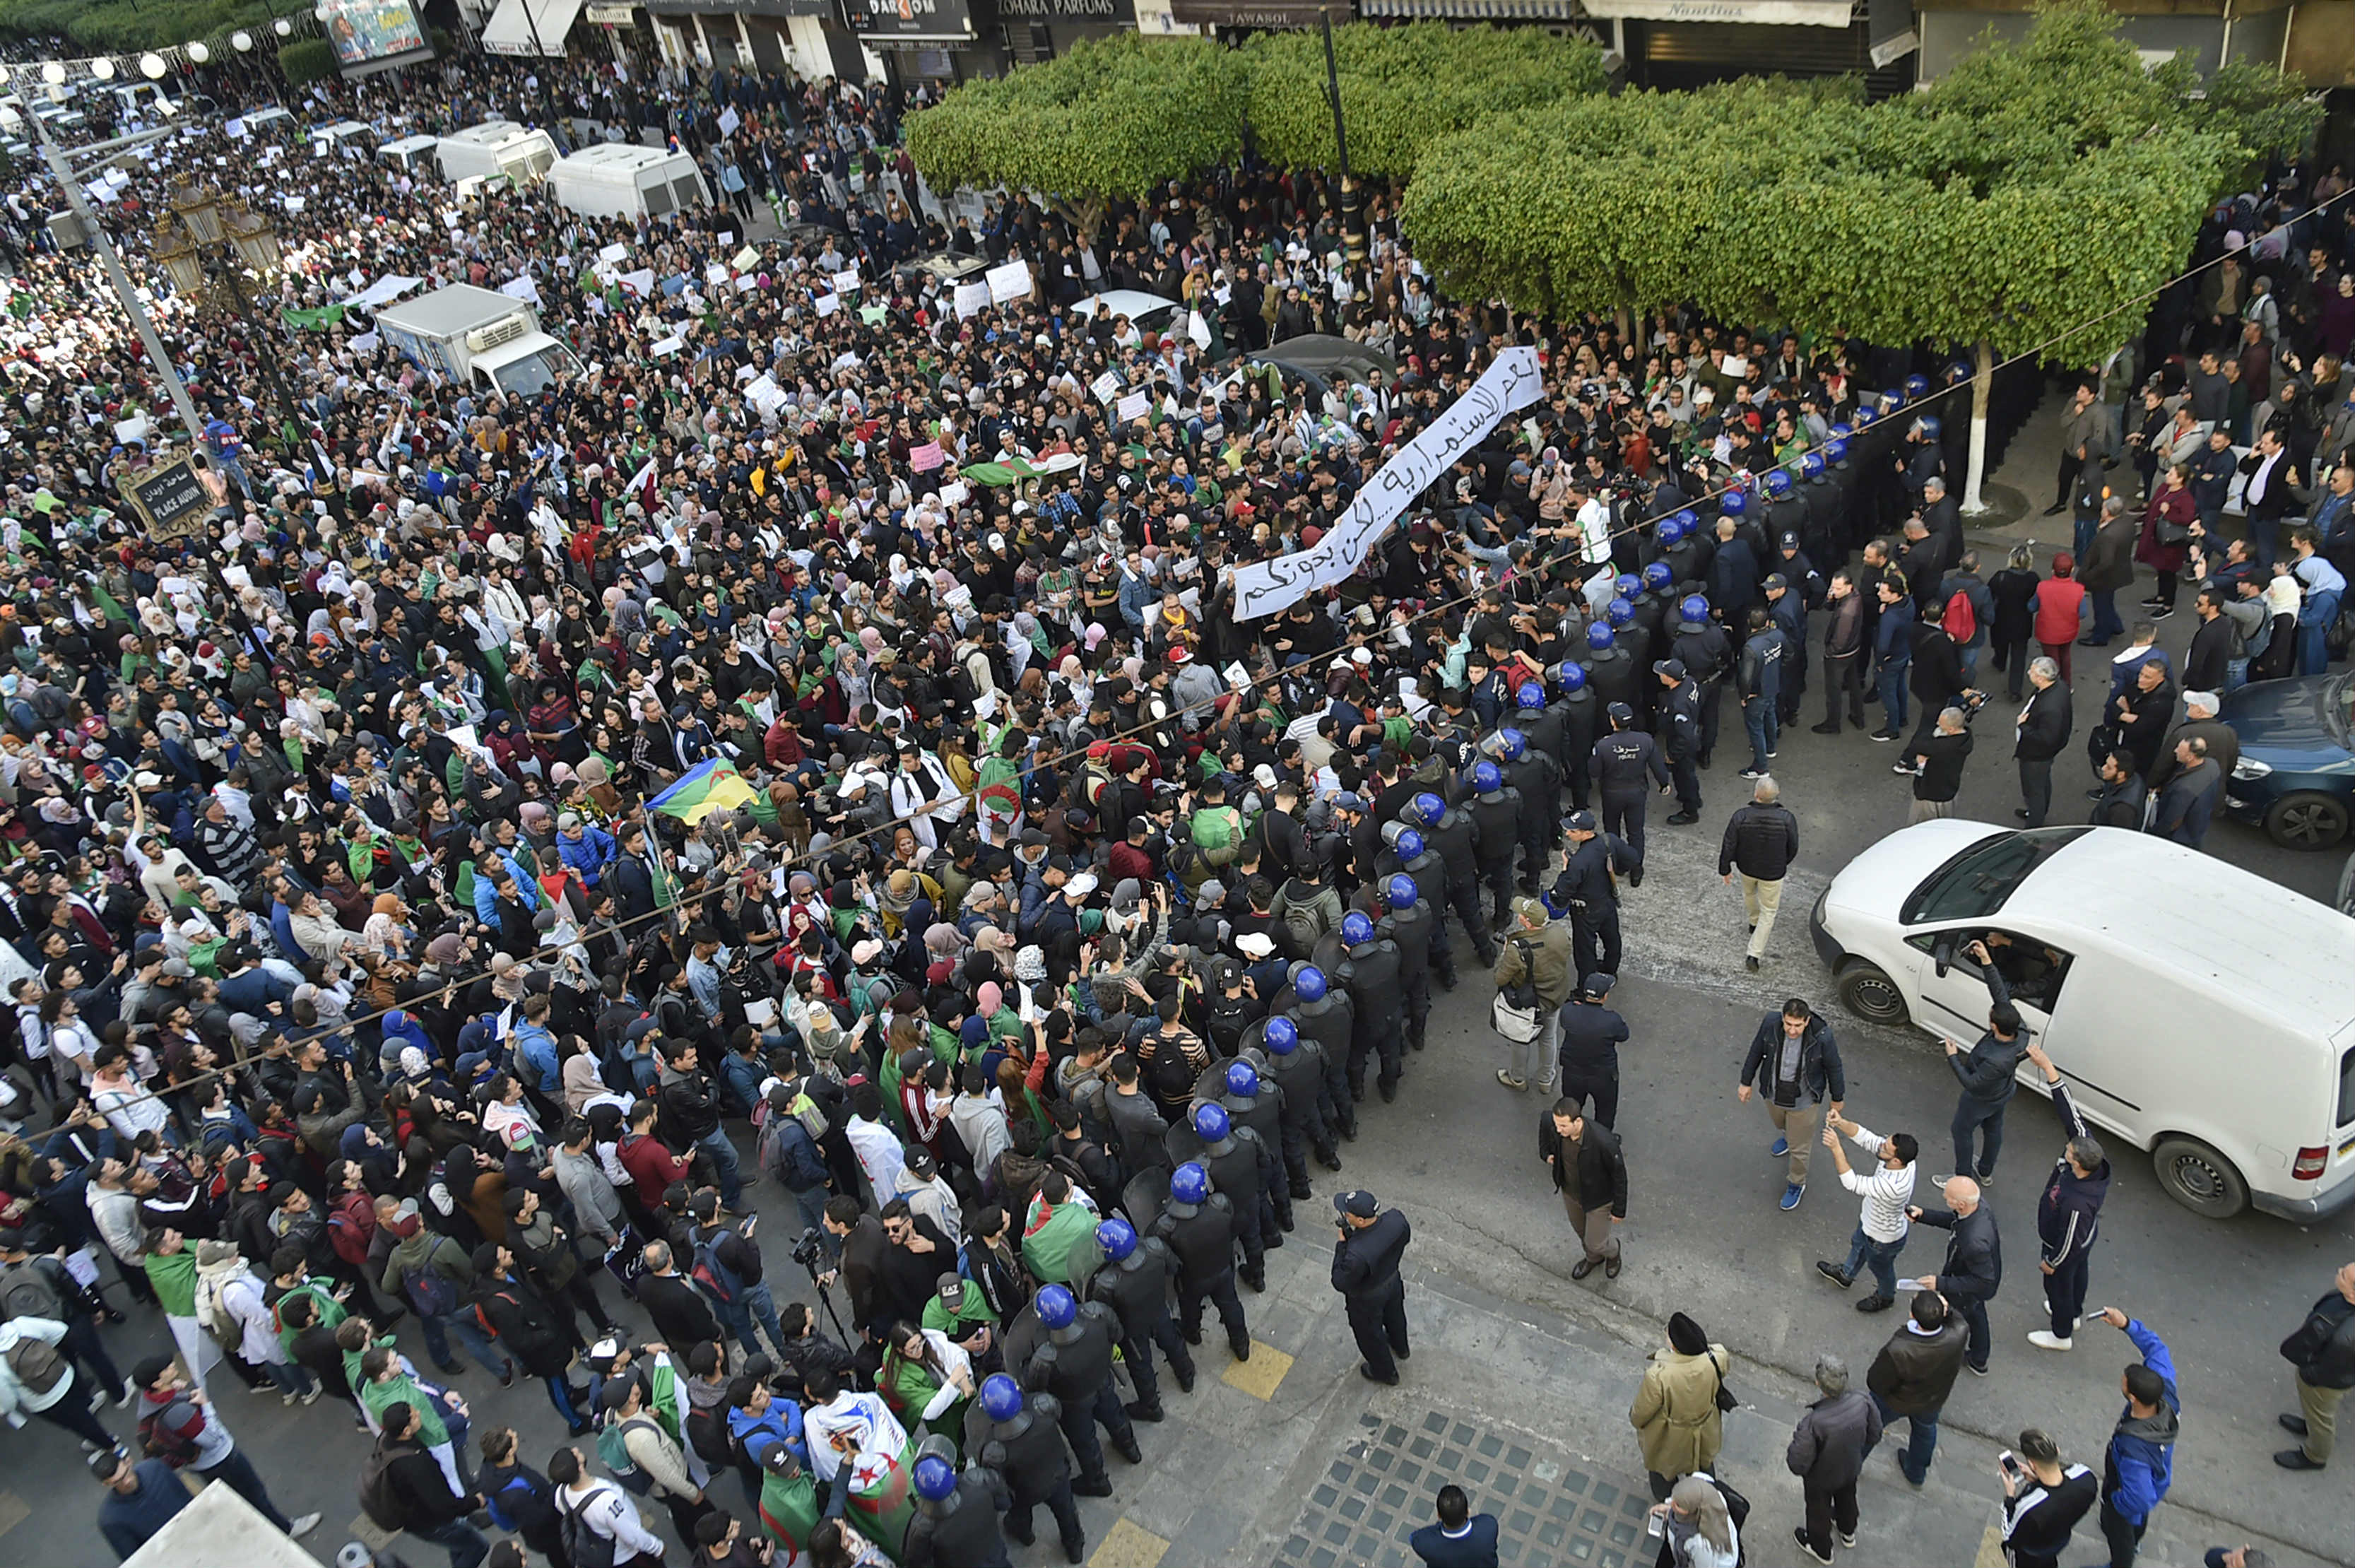 Thousands of people have taken to the streets of the capital Algiers (AFP)